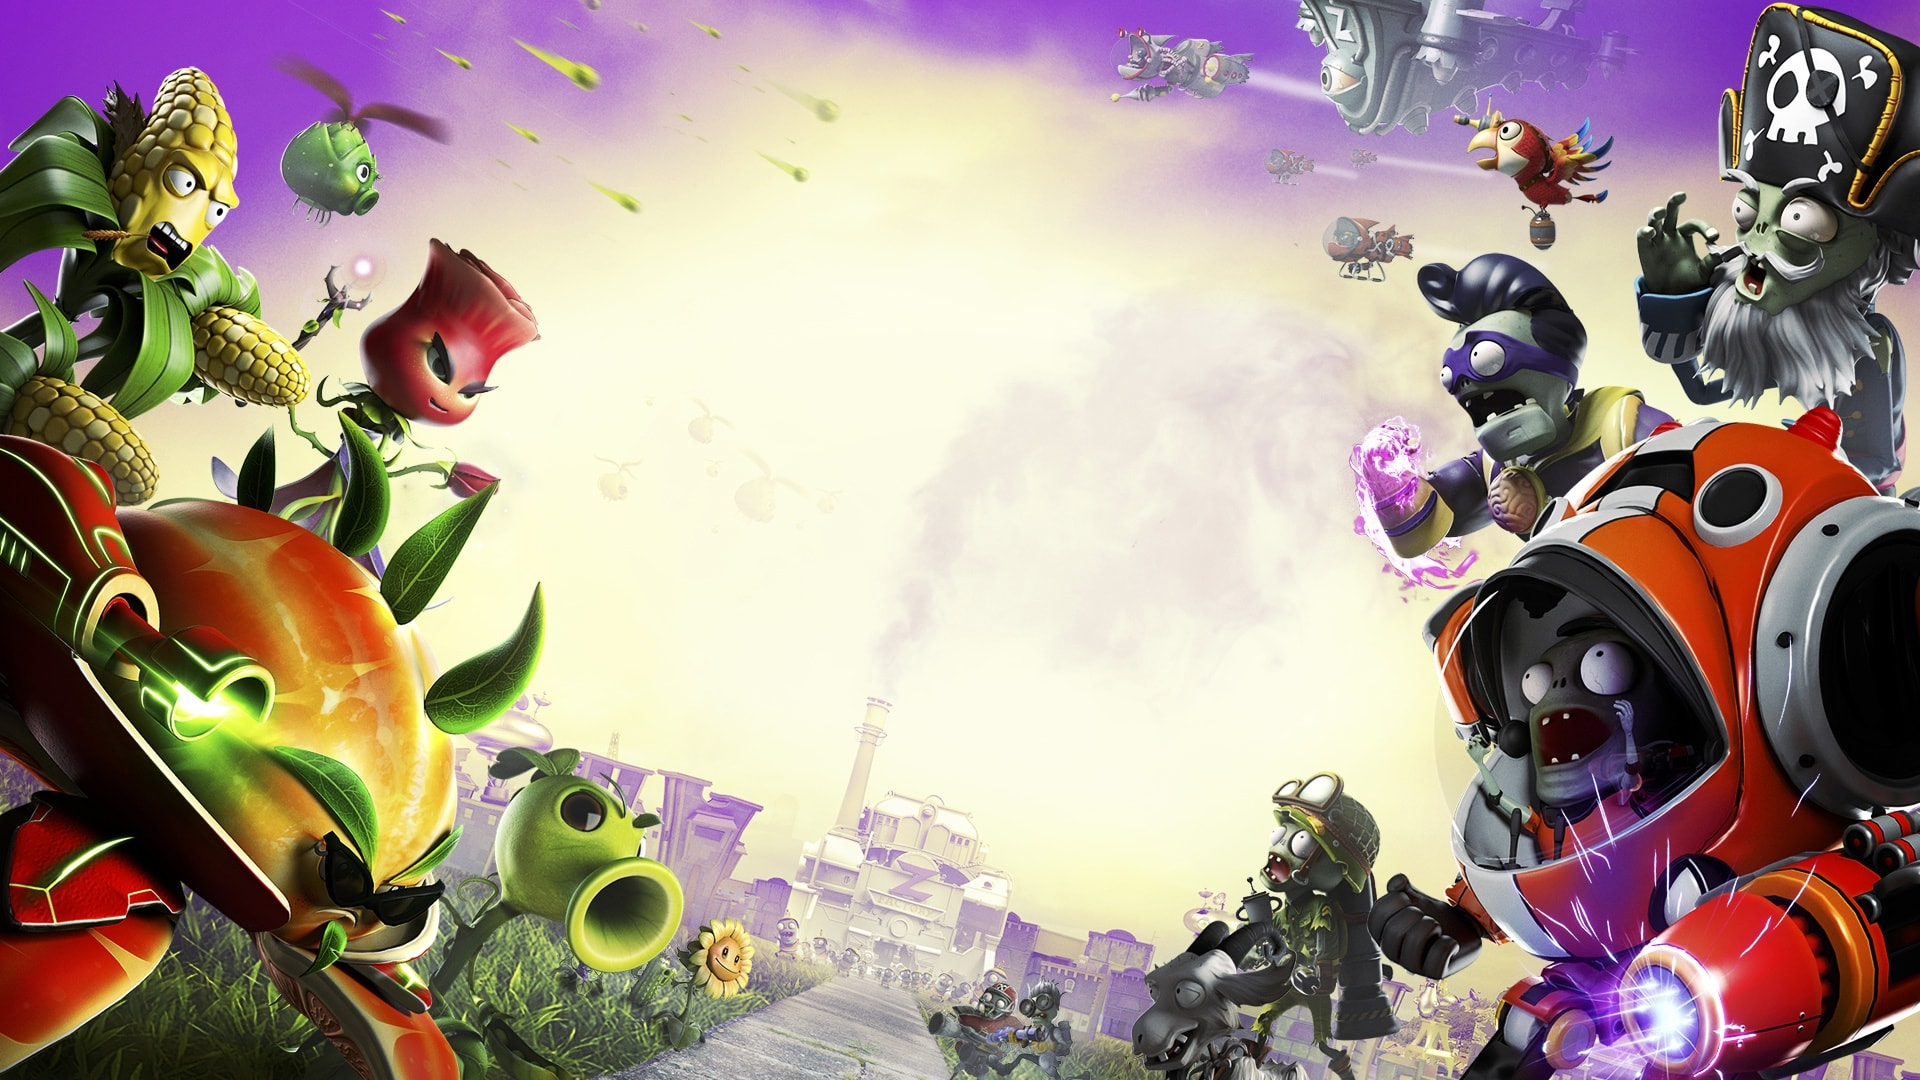 Plants vs. Zombies: Garden Warfare 2 widescreen wallpapers